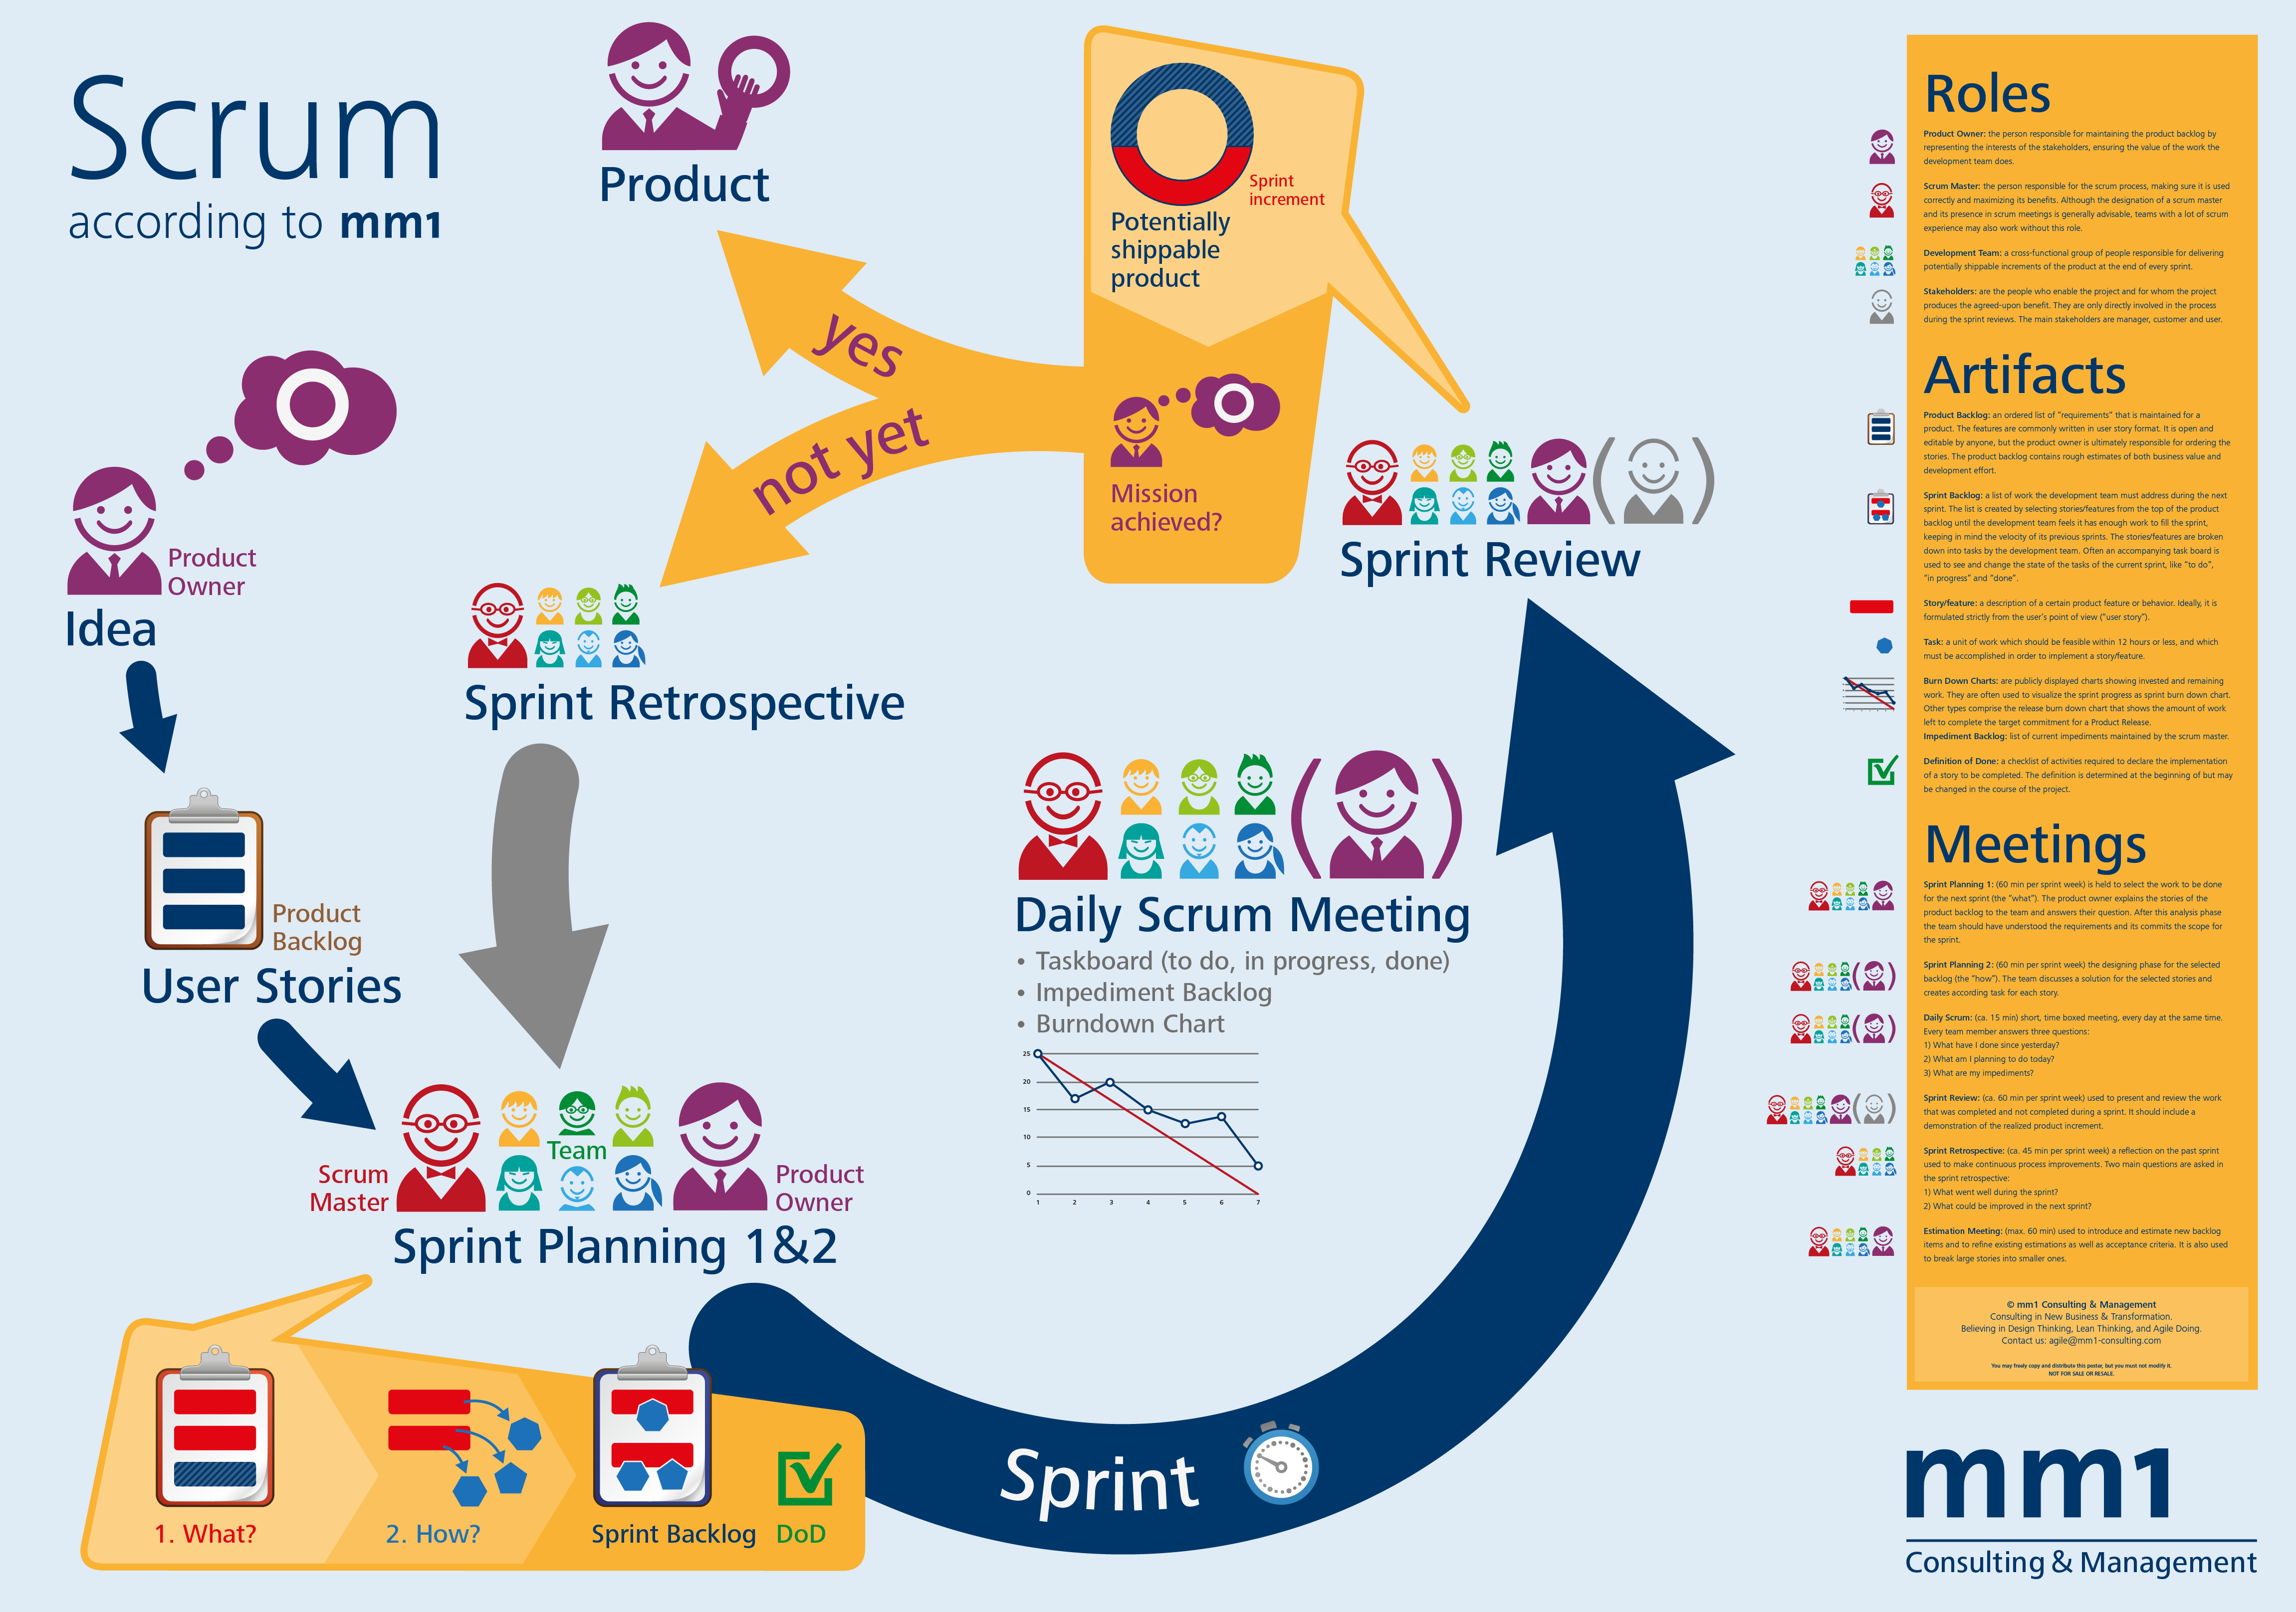 20 Jackpot Agile Project Management Templates For Excel Free Tipsographic Agile Software Development Agile Project Management Agile Development